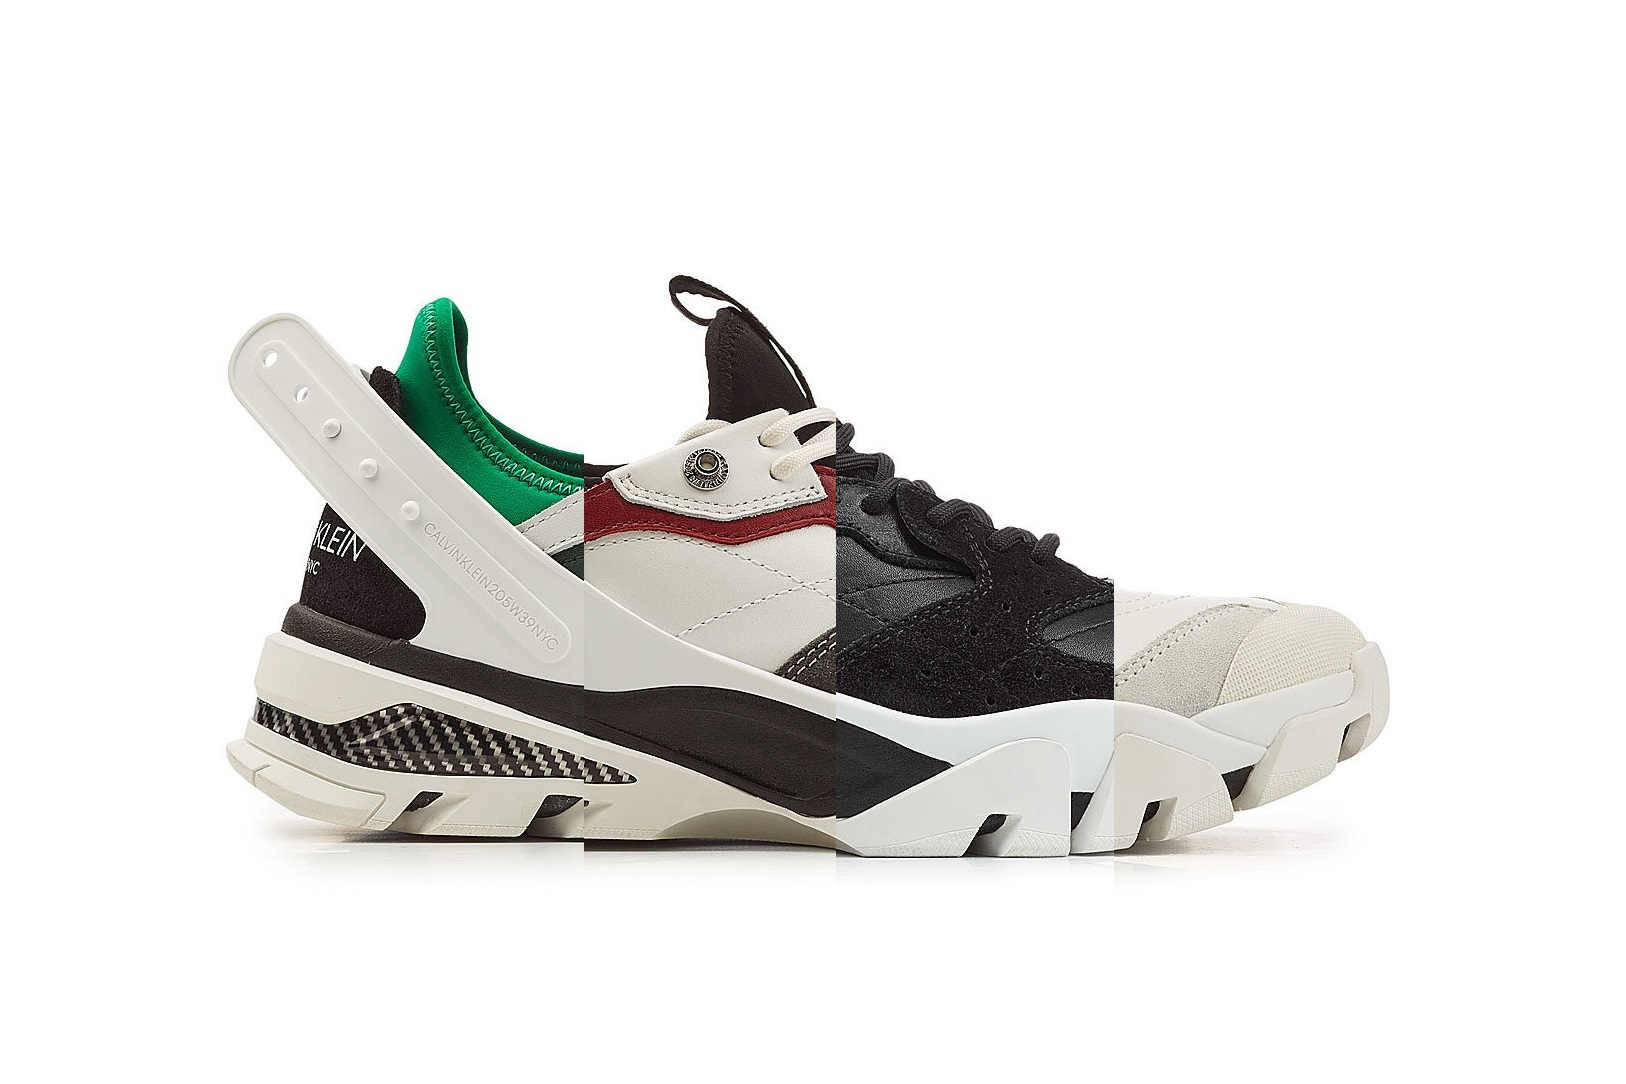 Calvin Klein's 205W39NYC Line Takes on the Chunky Trend for Carlos 10 Sneakers